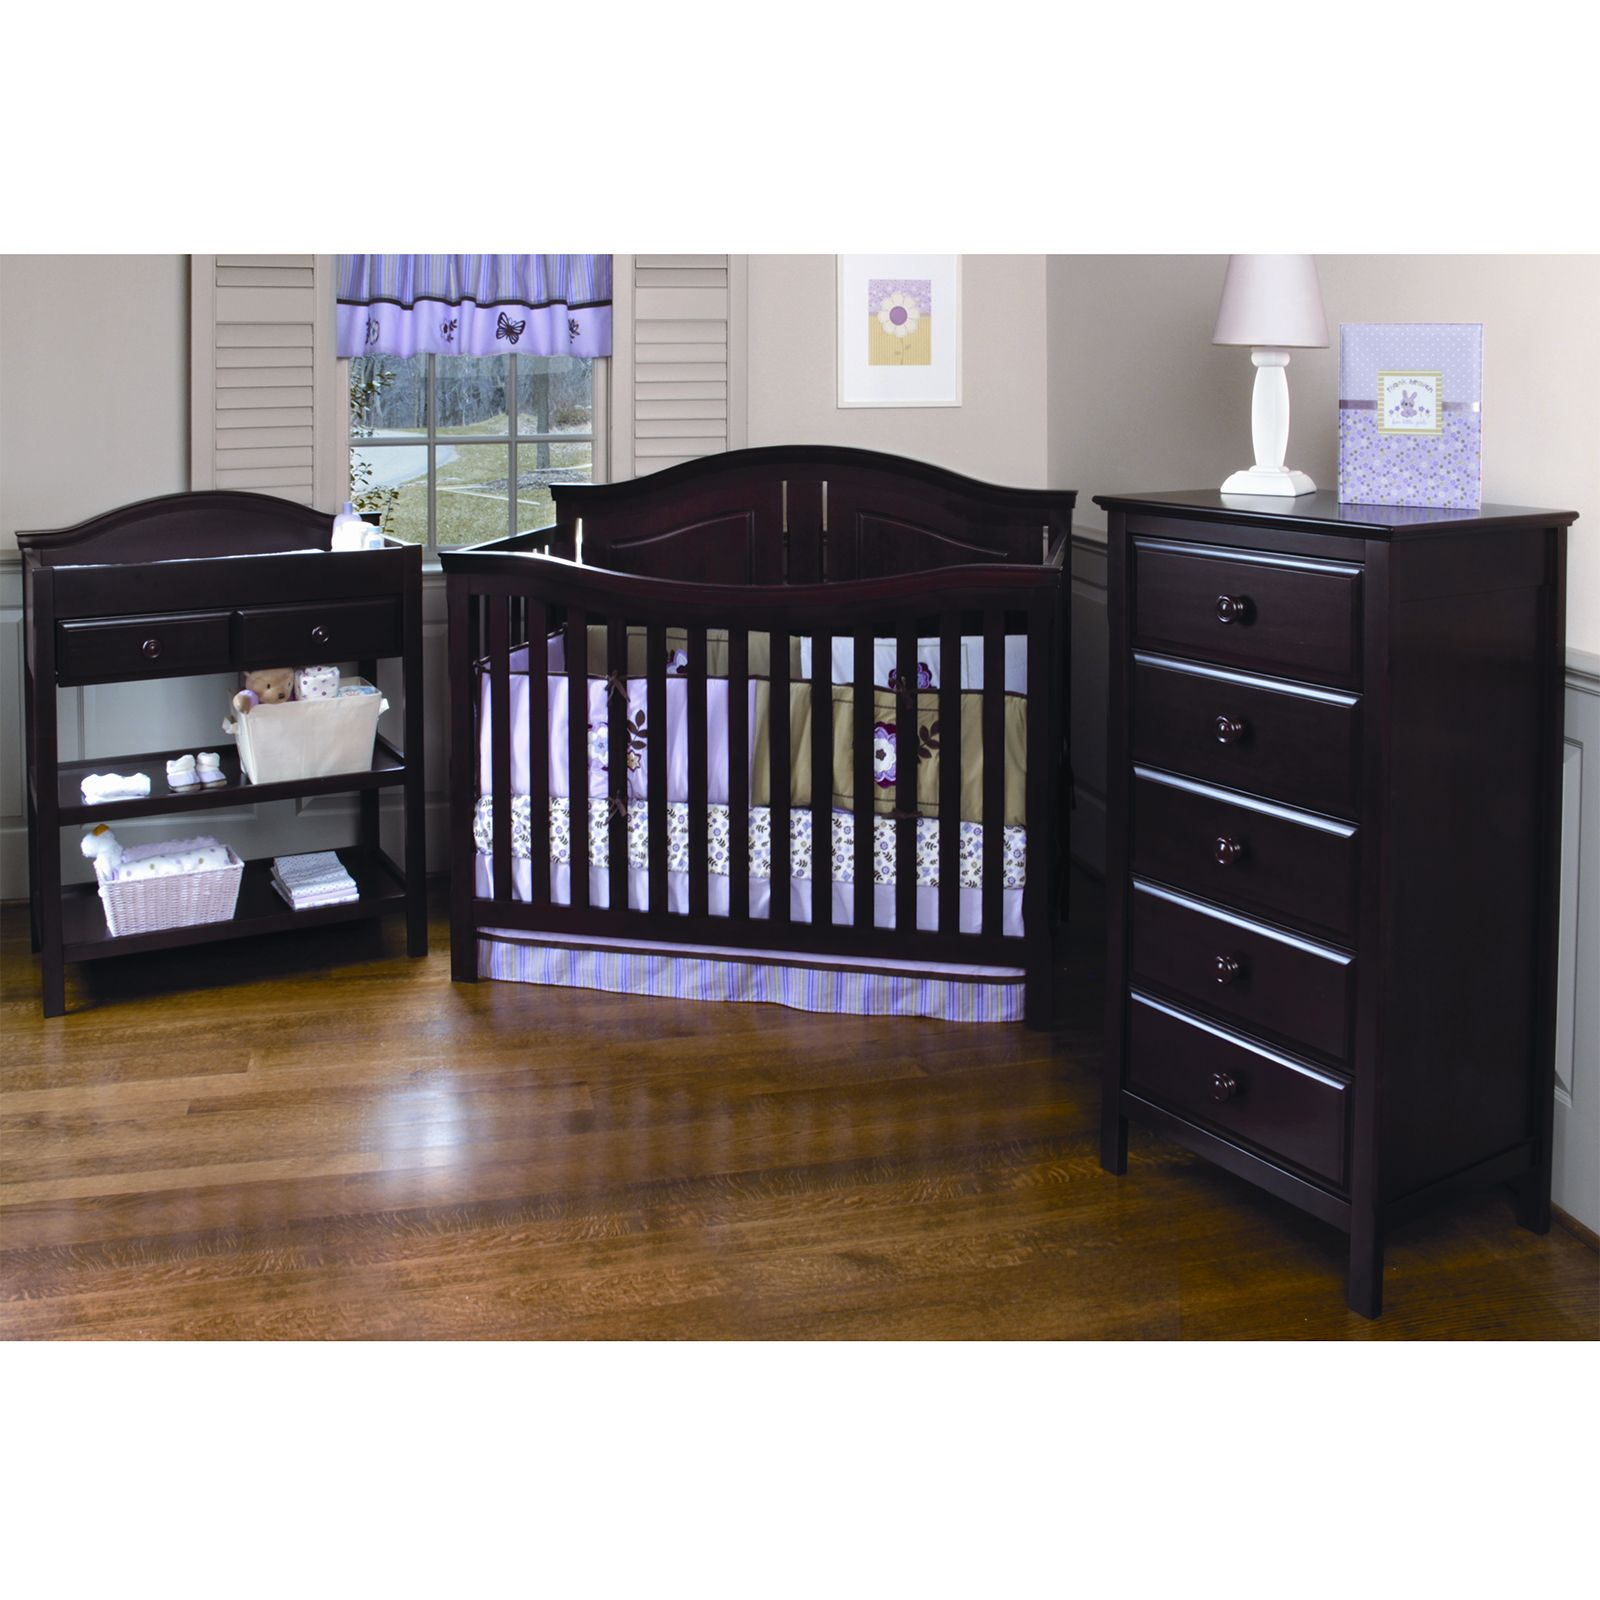 Wheaton Collection Style #15150 Burlington Coat Factory | Babyy ...